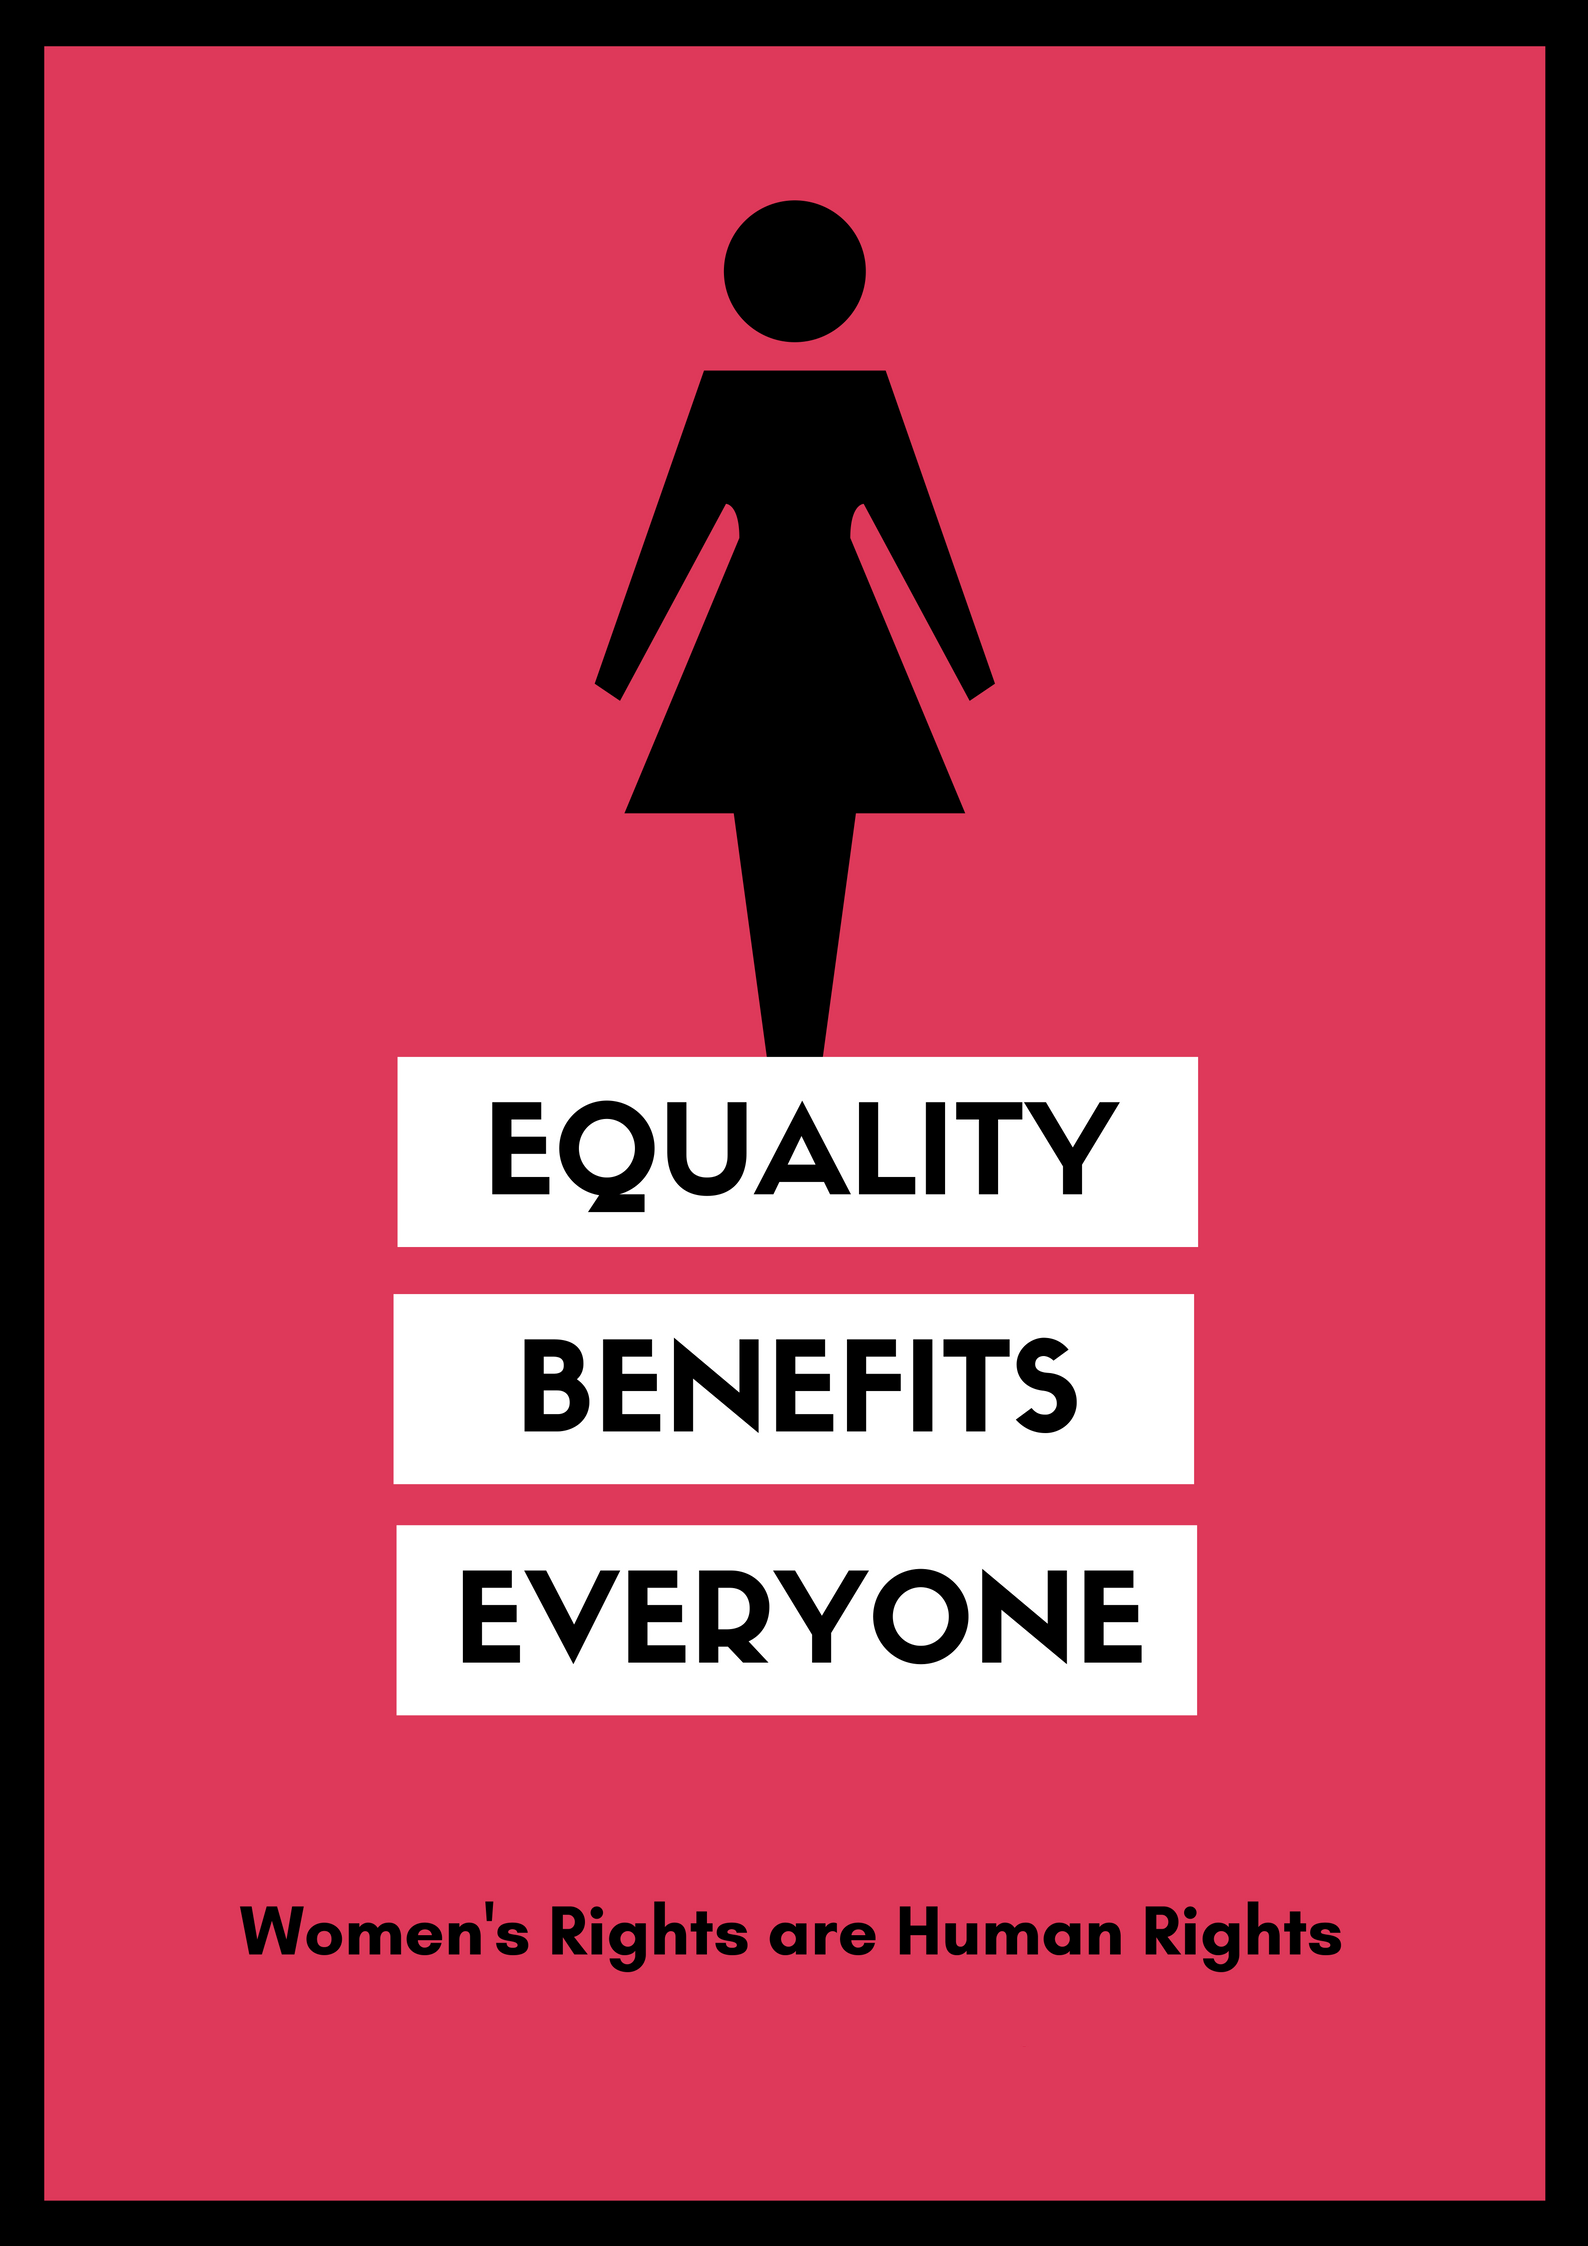 009 The world is searching for gender equality more than ever